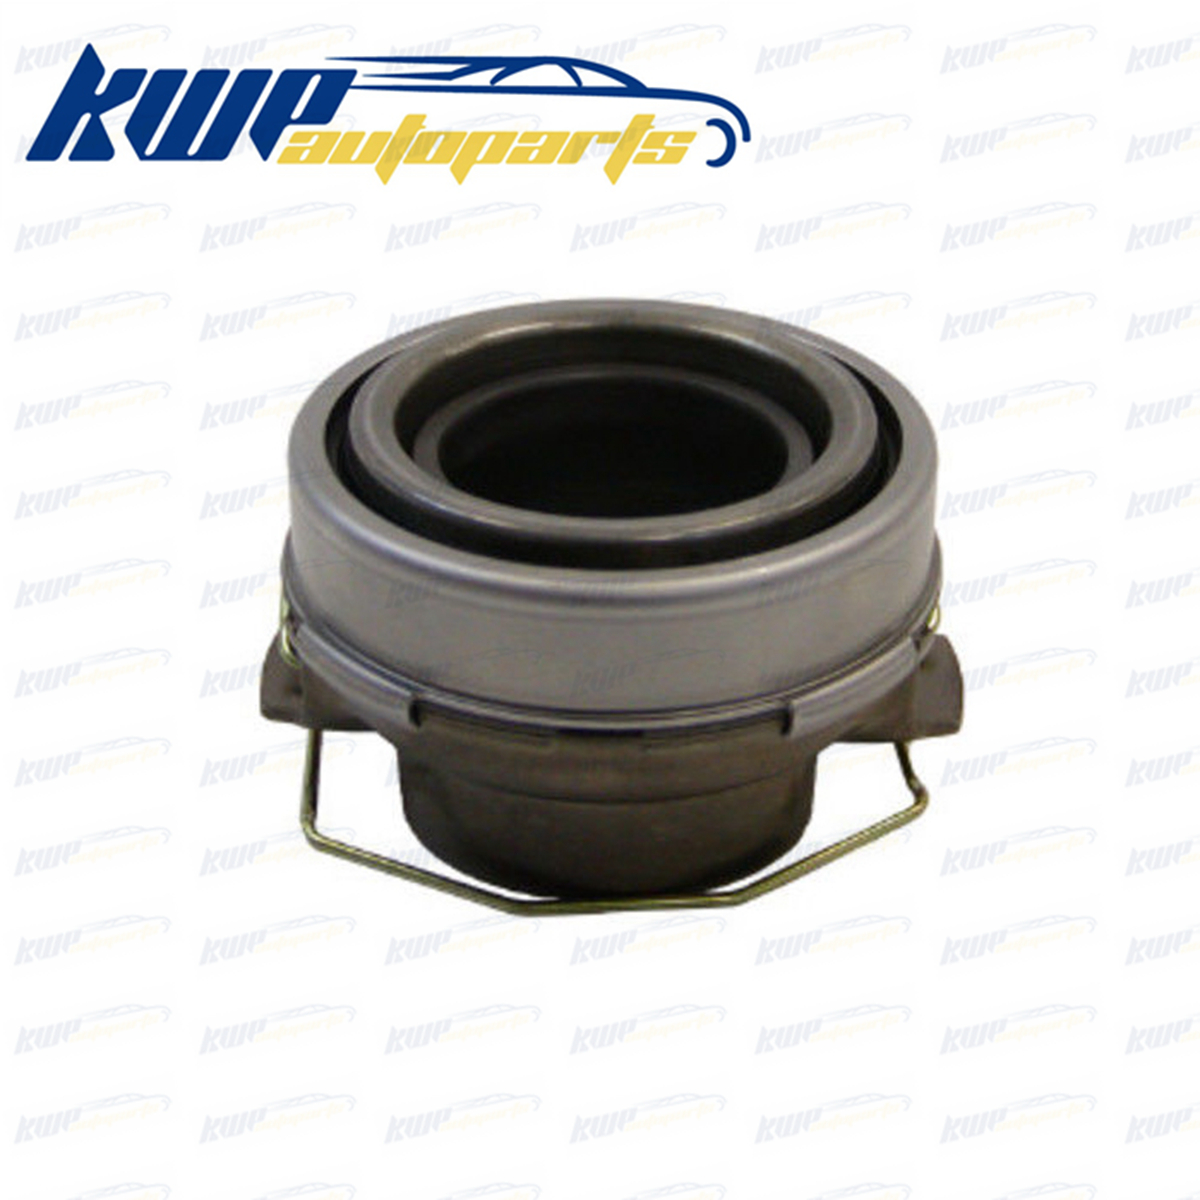 Clutch release bearing for toyota tacoma 4runner t100 supra previa van lexus is300 31230